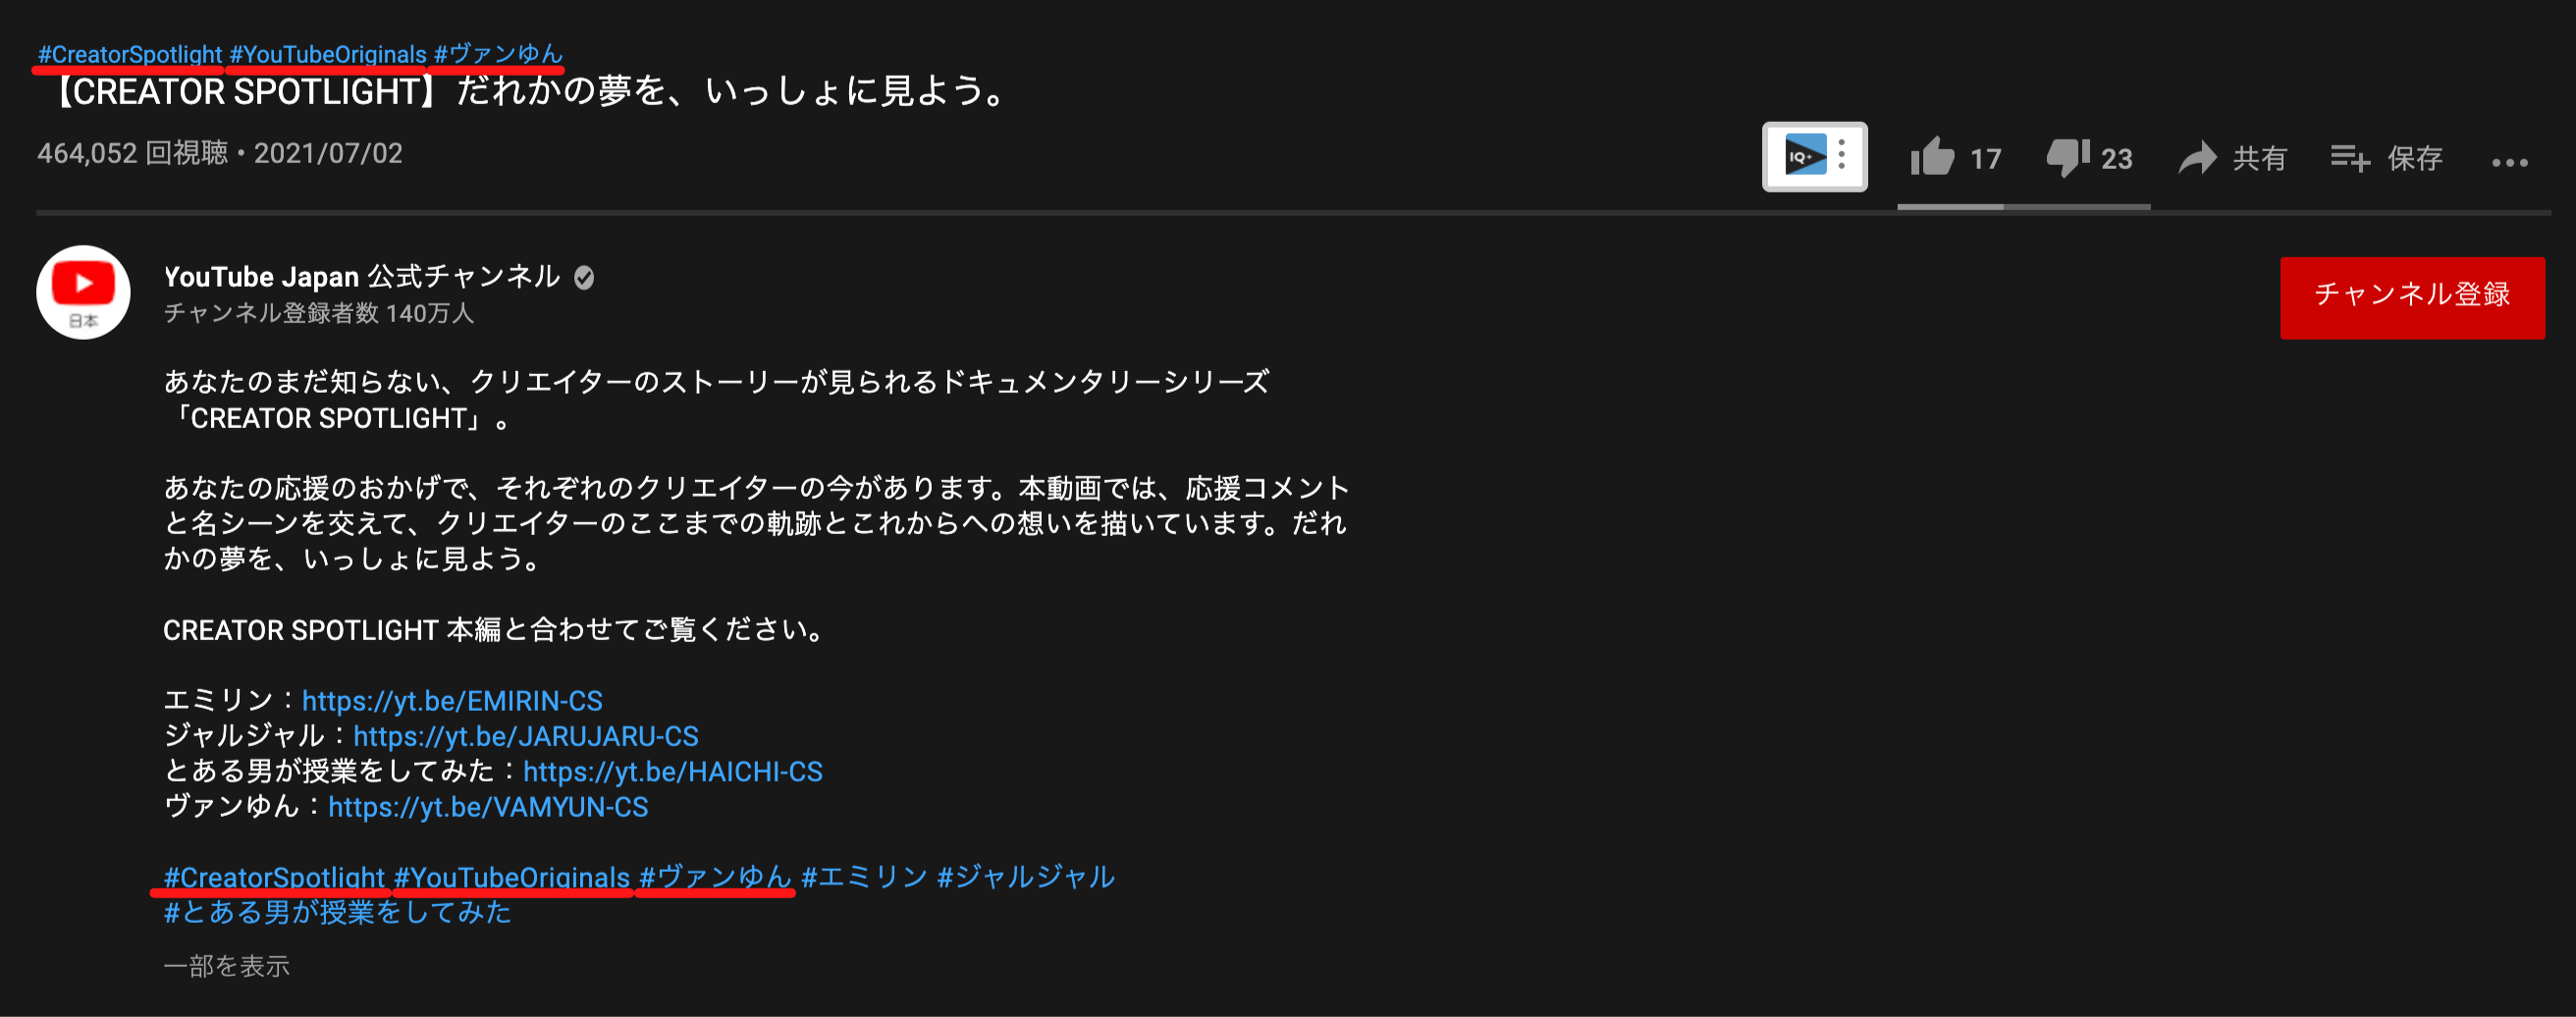 youtube-japan official channnel-hashtag